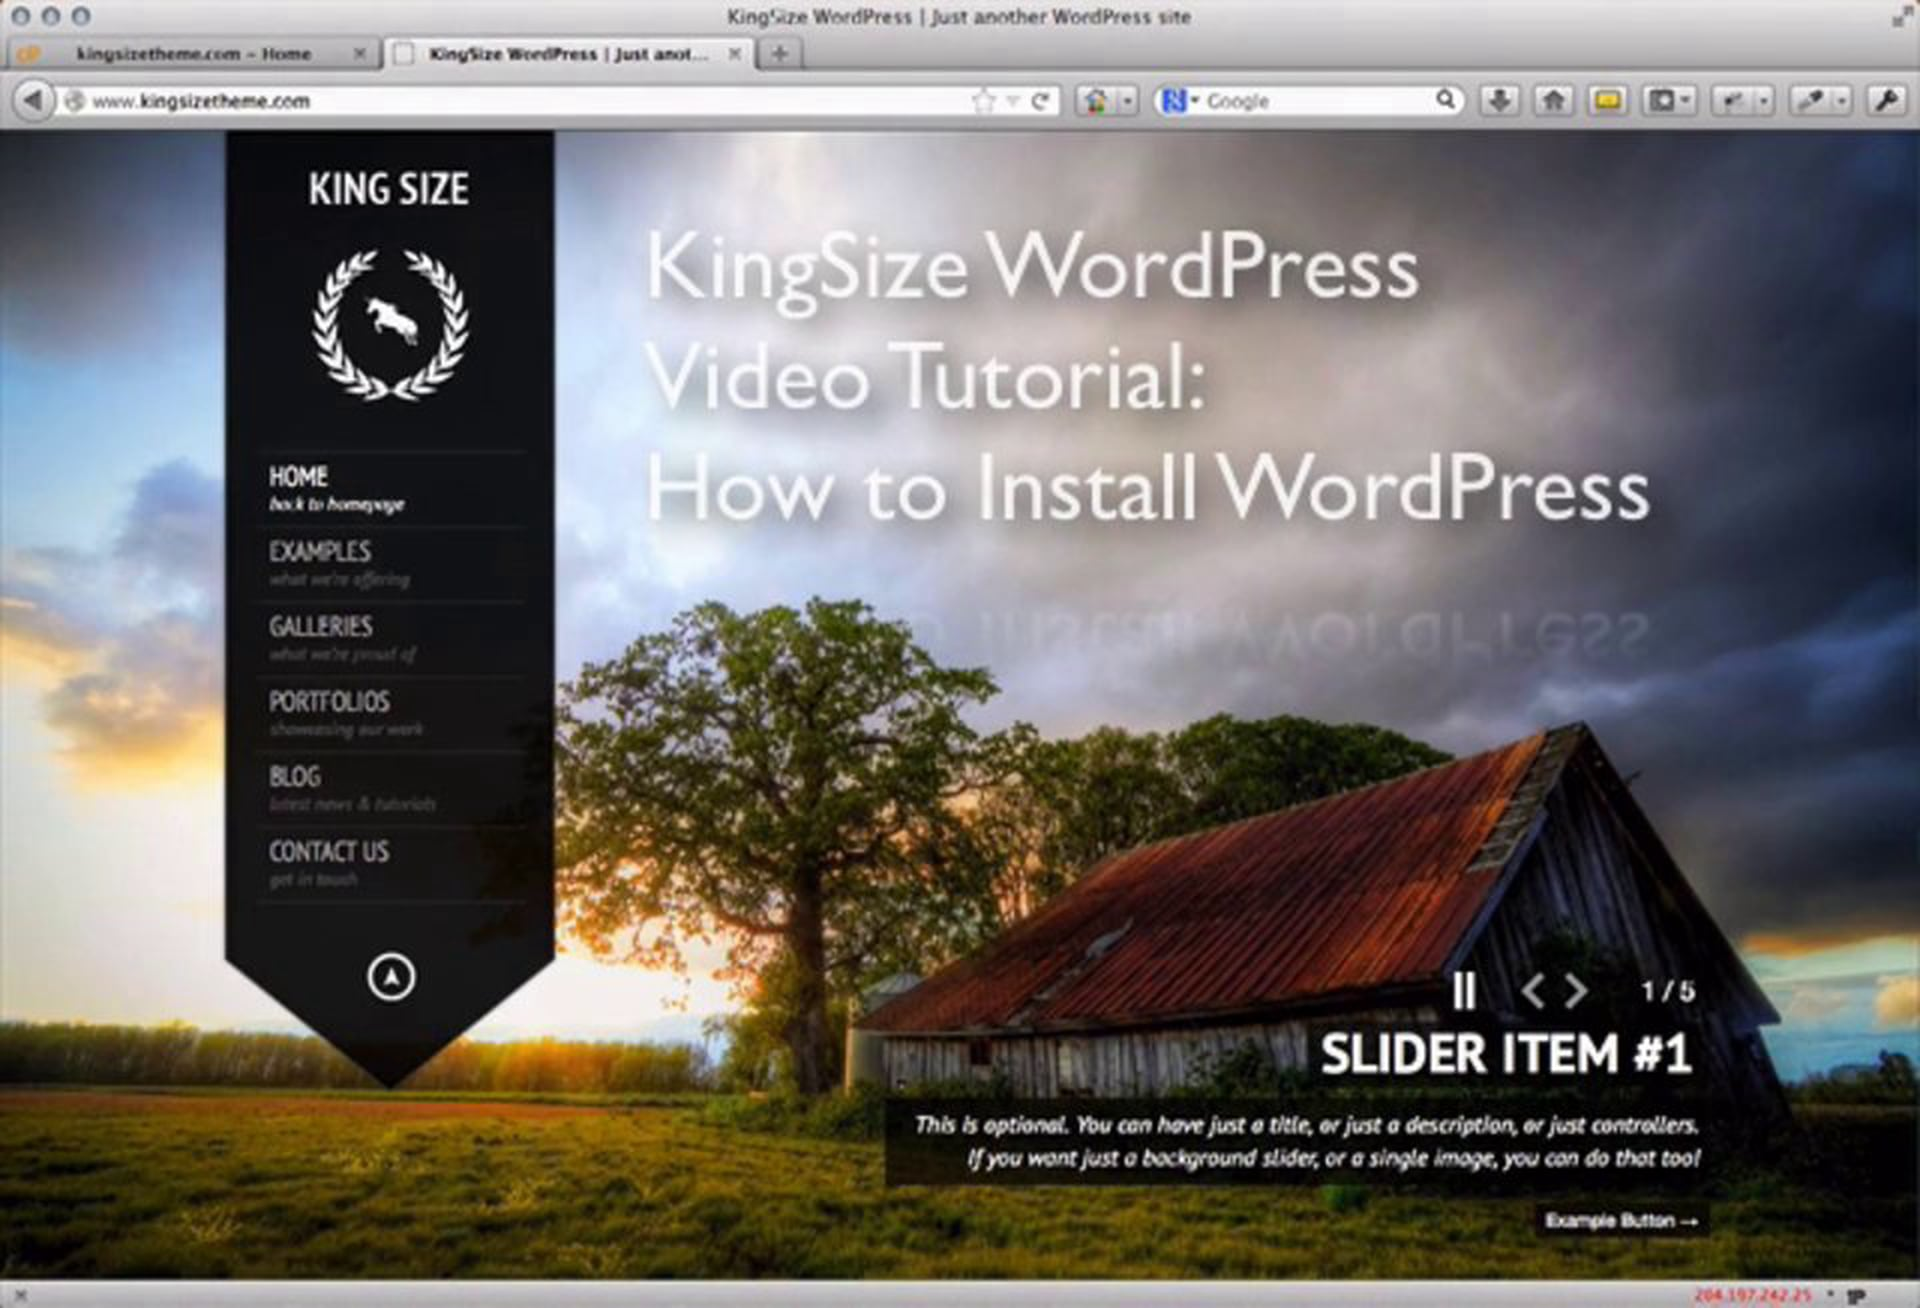 1. KingSize WordPress: Installing WordPress